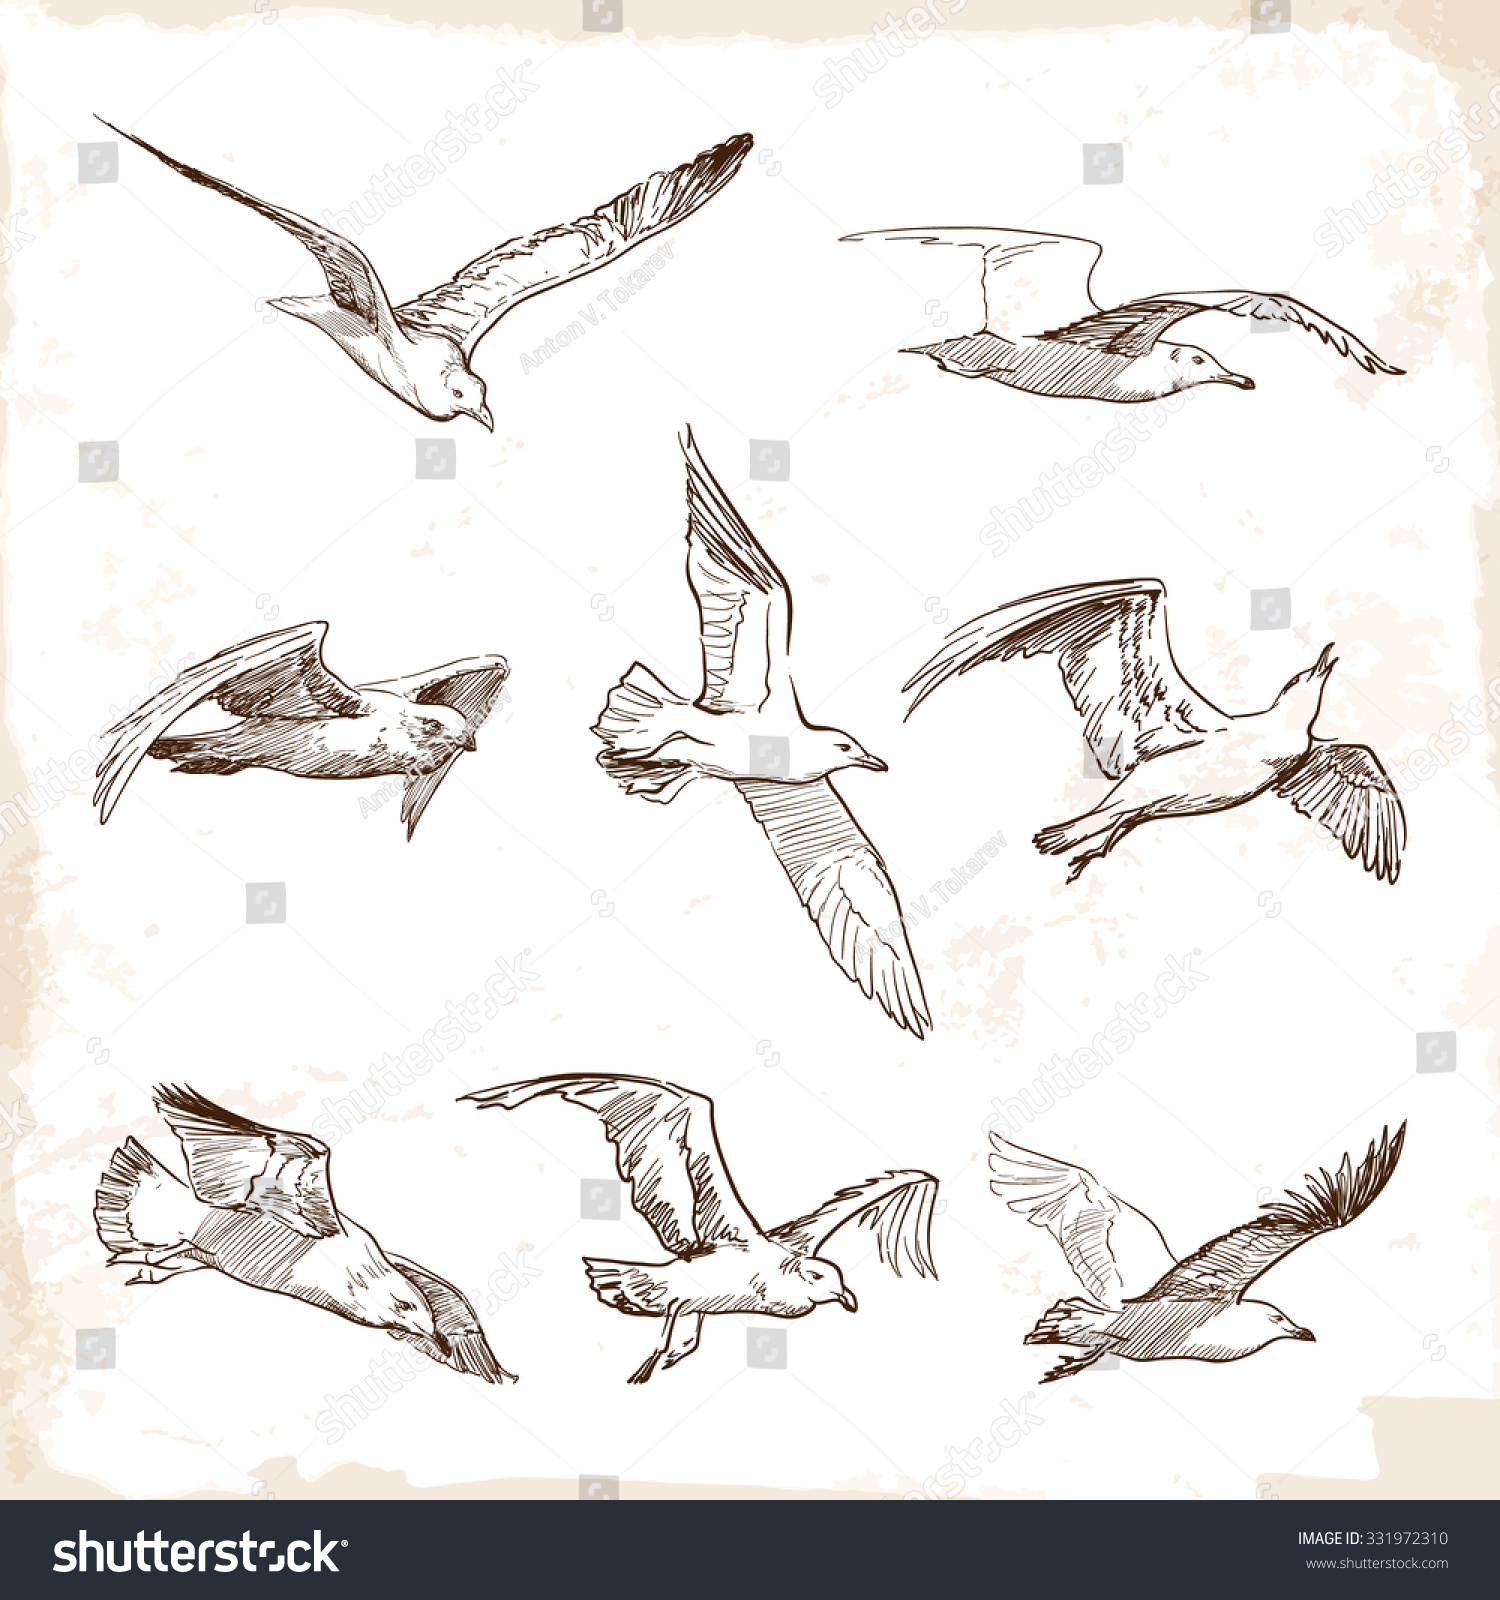 Set of sketches of flying swallows stock vector illustration - Flying Seagulls Set Of 8 Original Wild Life Drawings Representing Different Phases Of A Bird